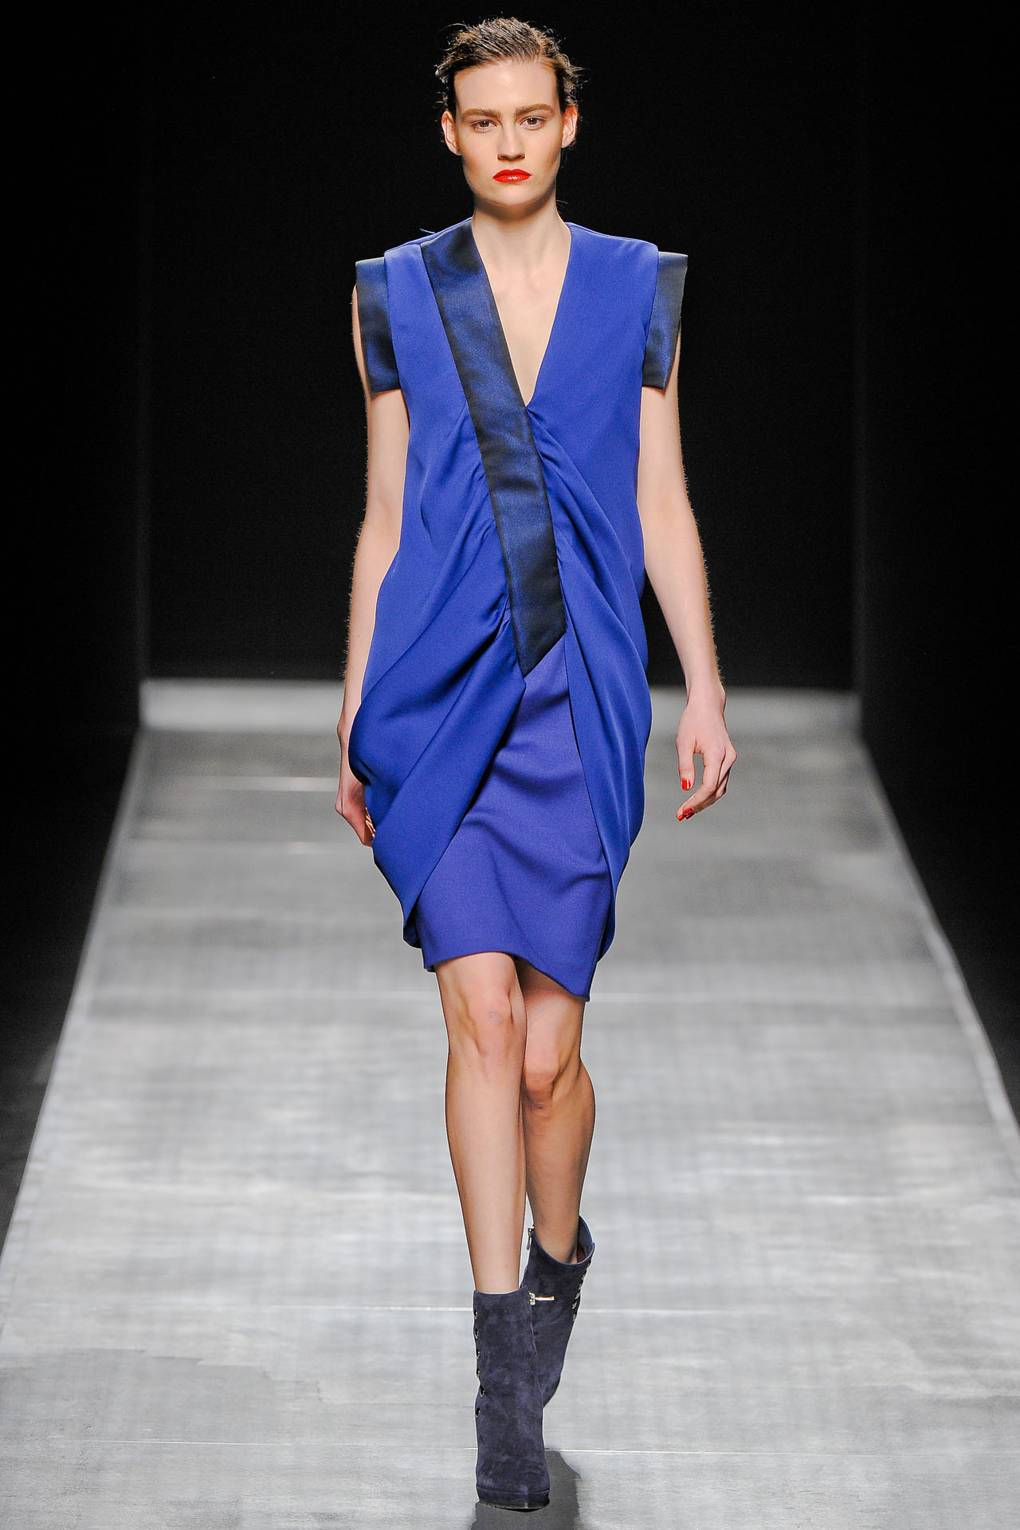 Cobalt - autumn/winter 2012-13 trend | British Vogue